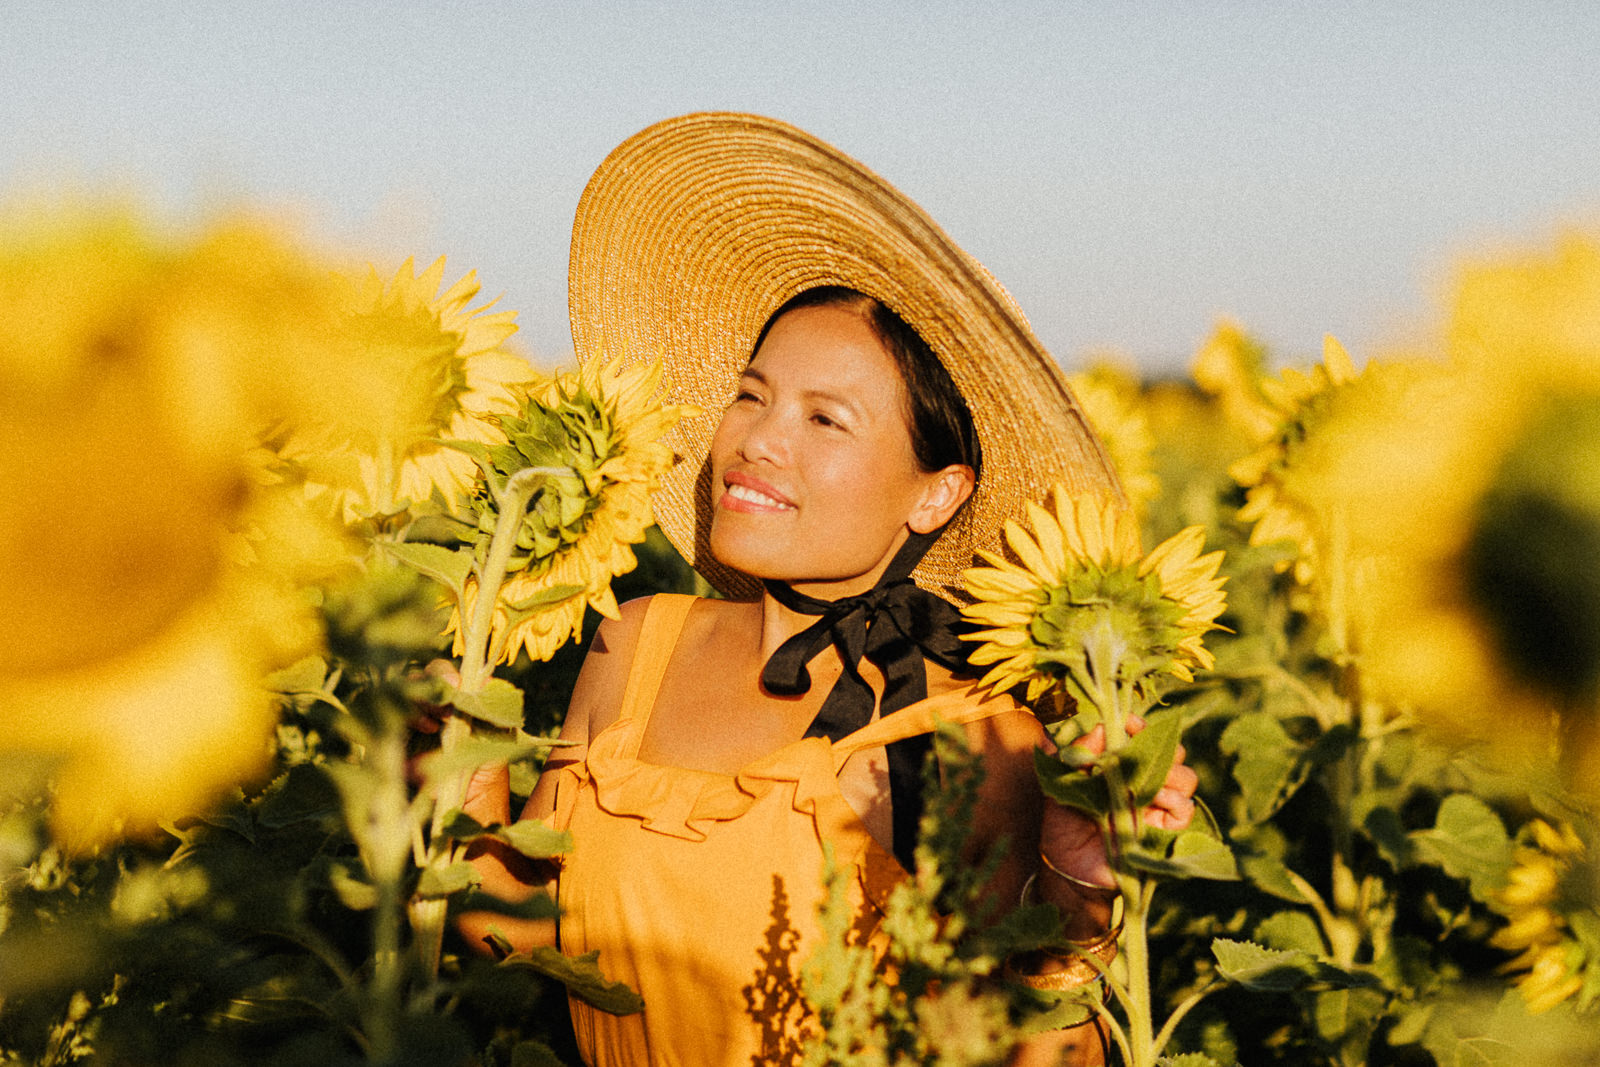 Pick your own sunflowers near Melbourne